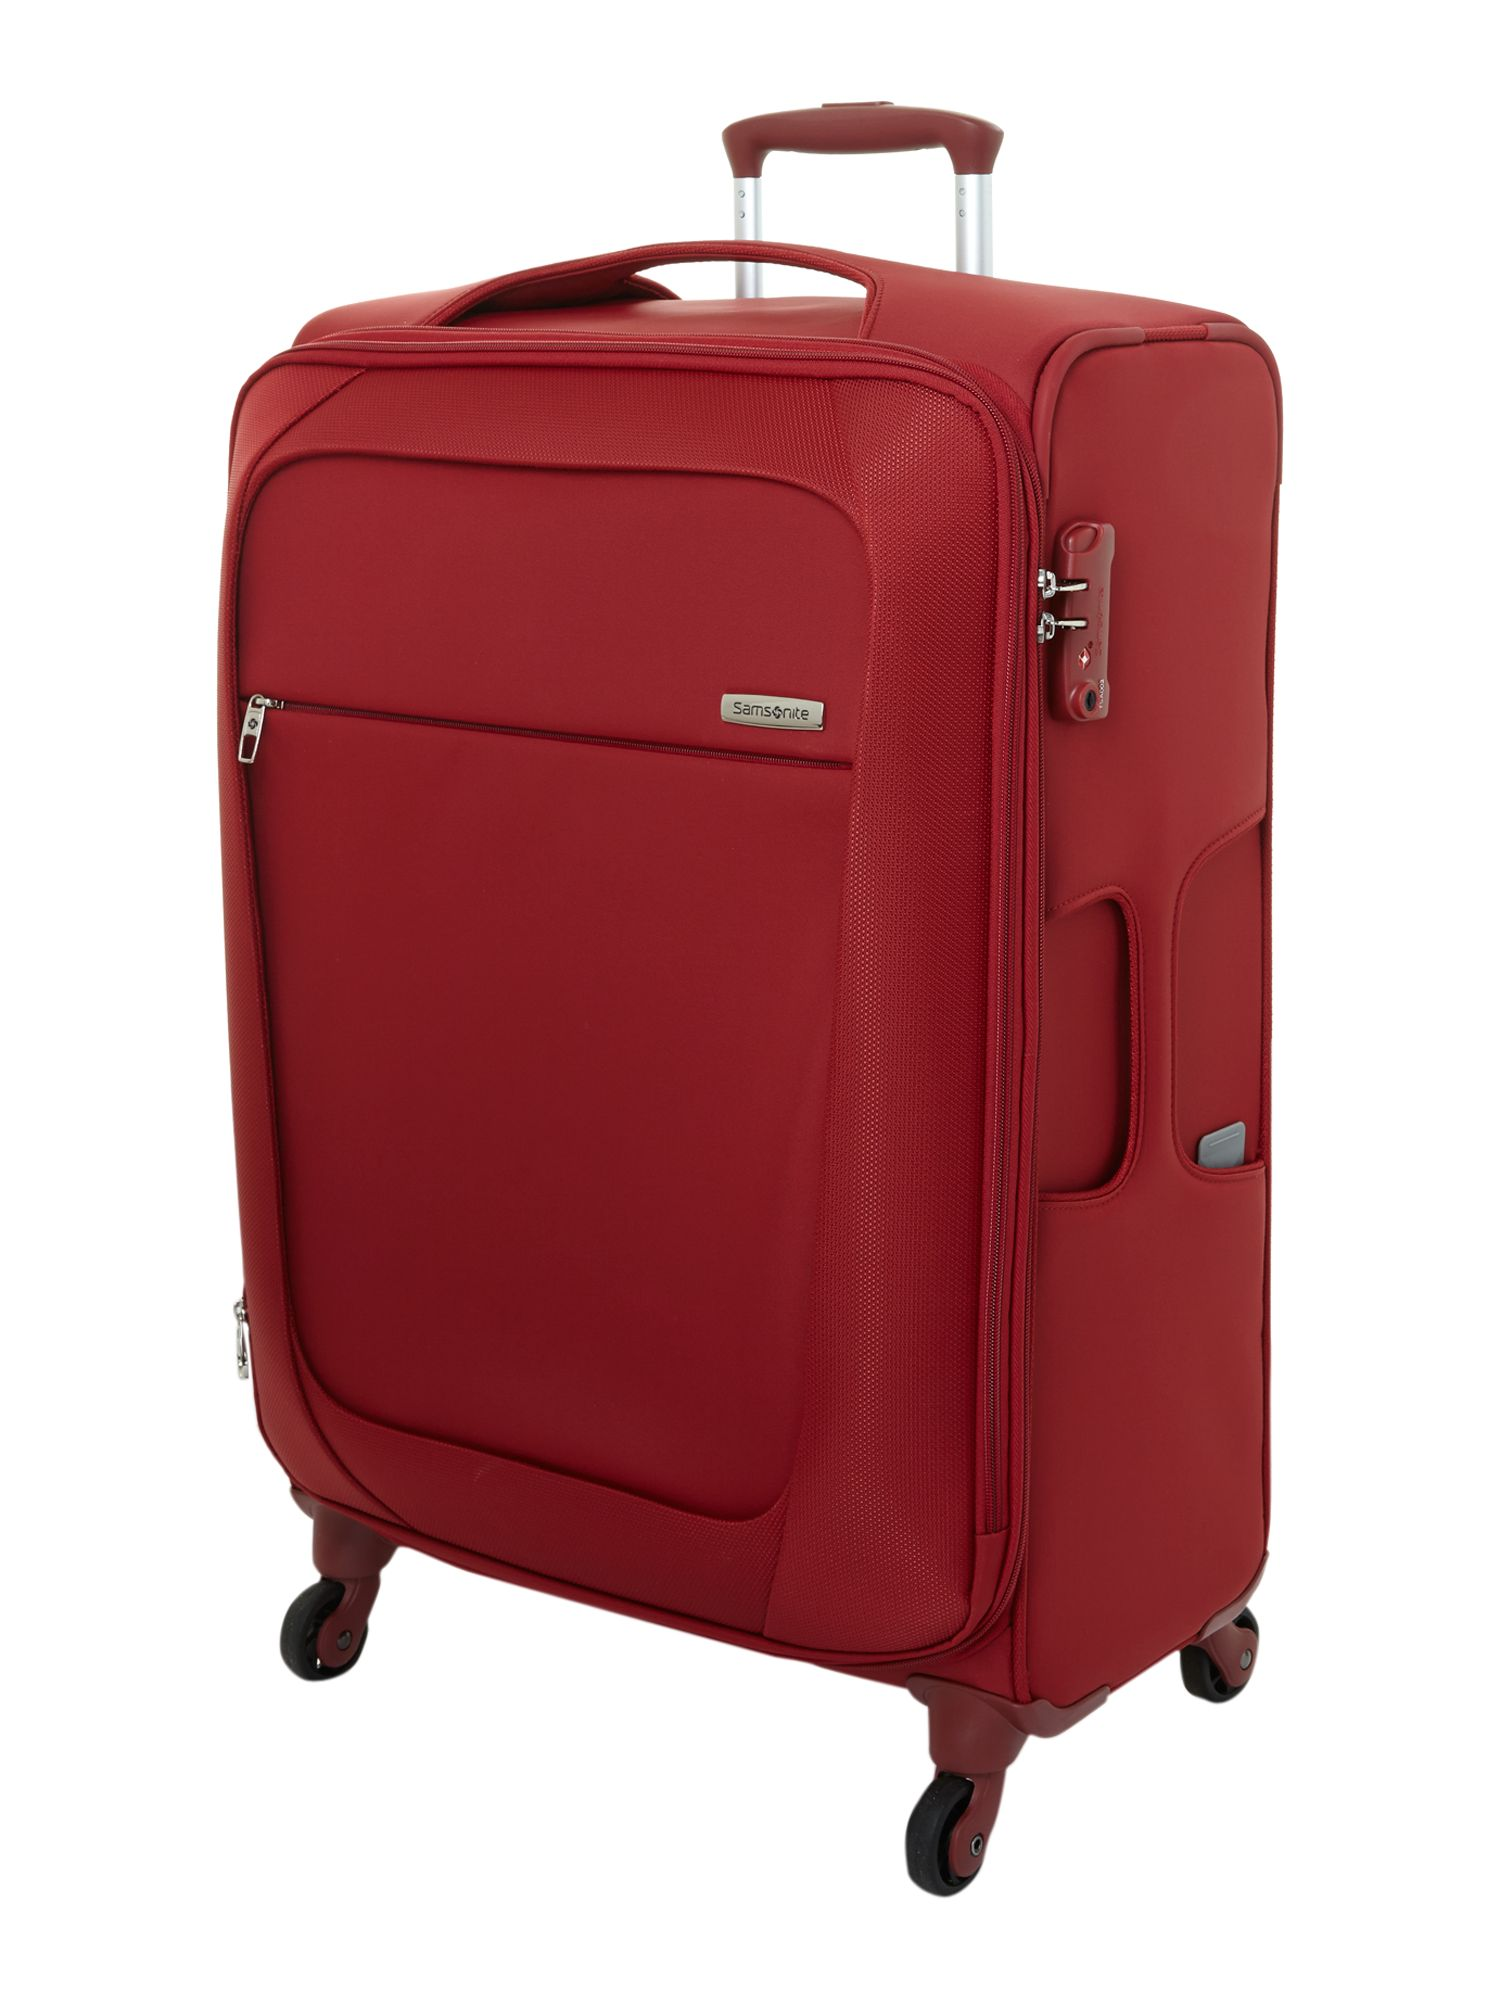 New B-Lite 4-wheel medium suitcase